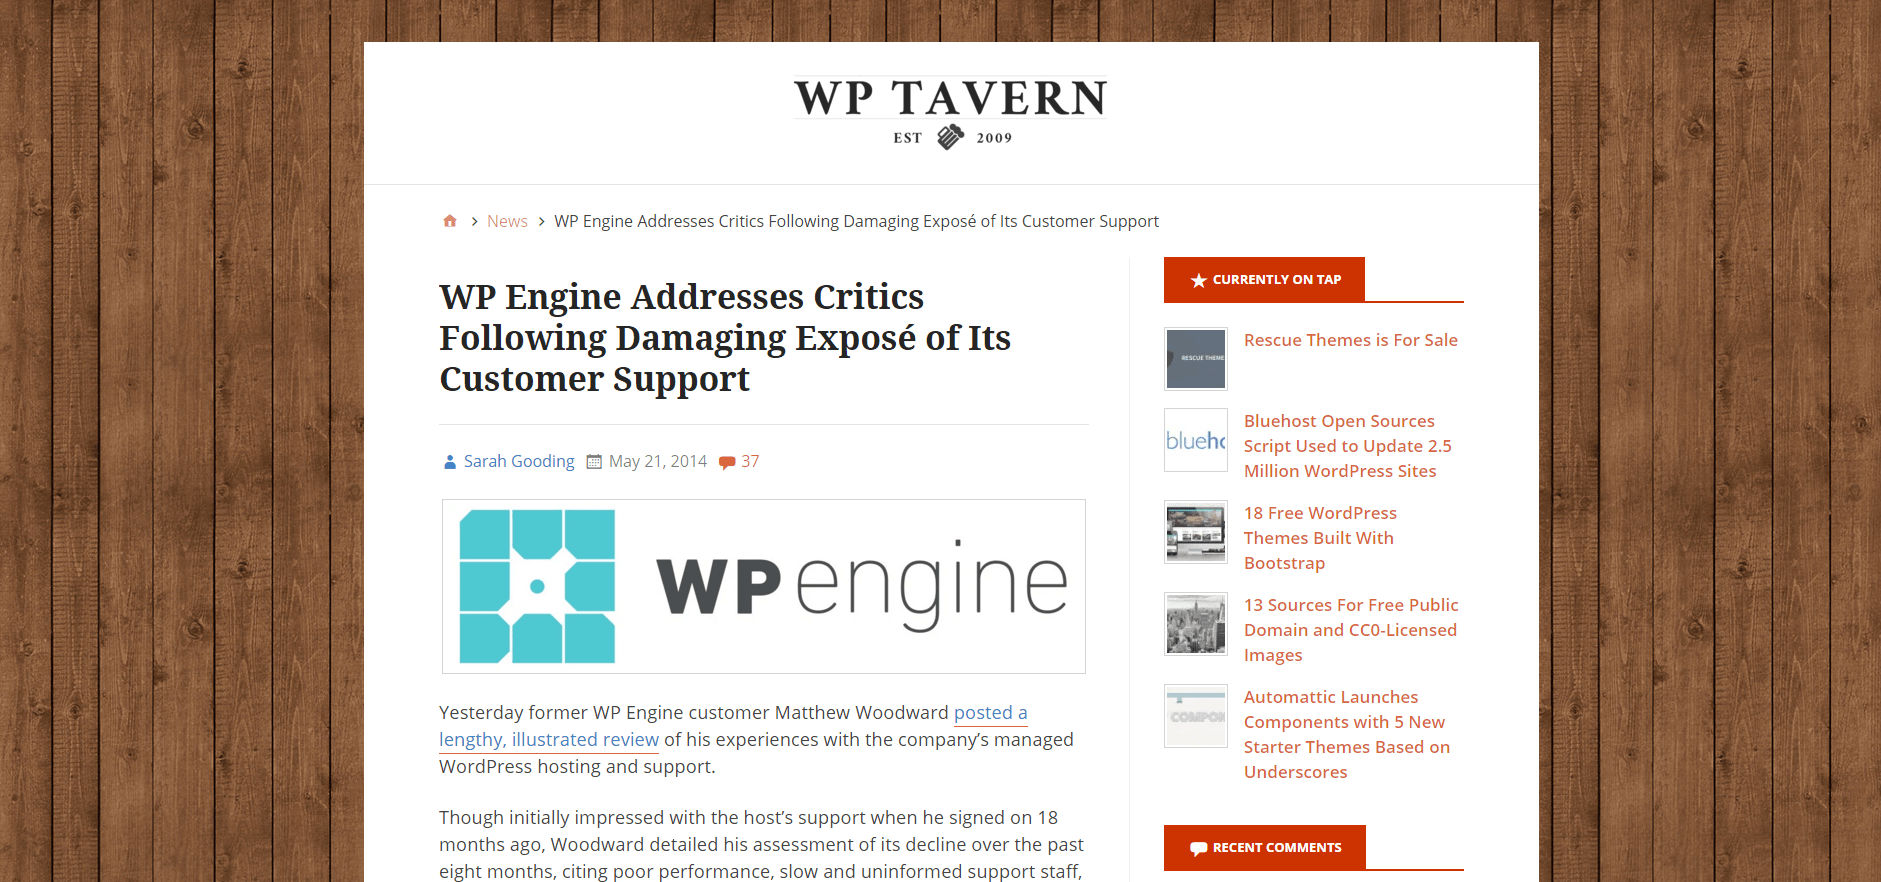 wpengine addresses critics in damaging customer support experience expose3